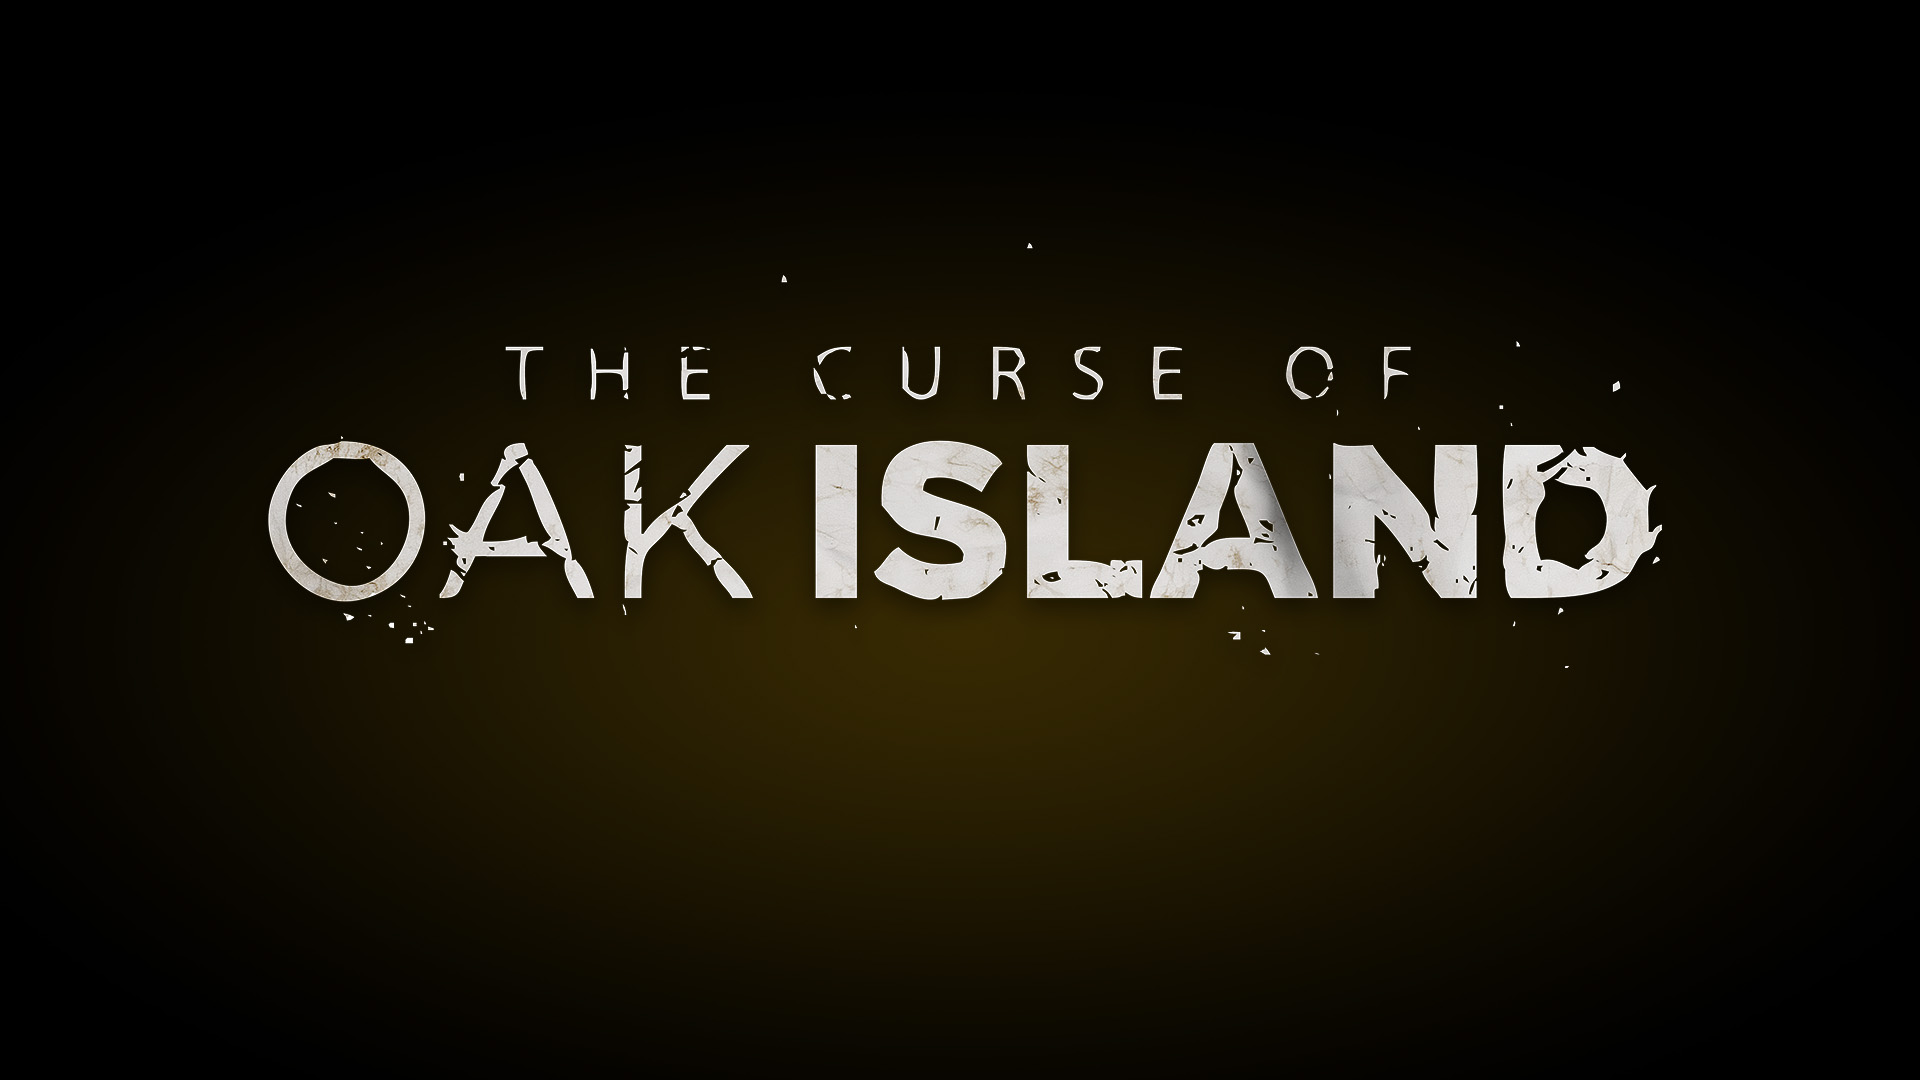 The Curse of Oak Island Full Episodes, Video & More | HISTORY